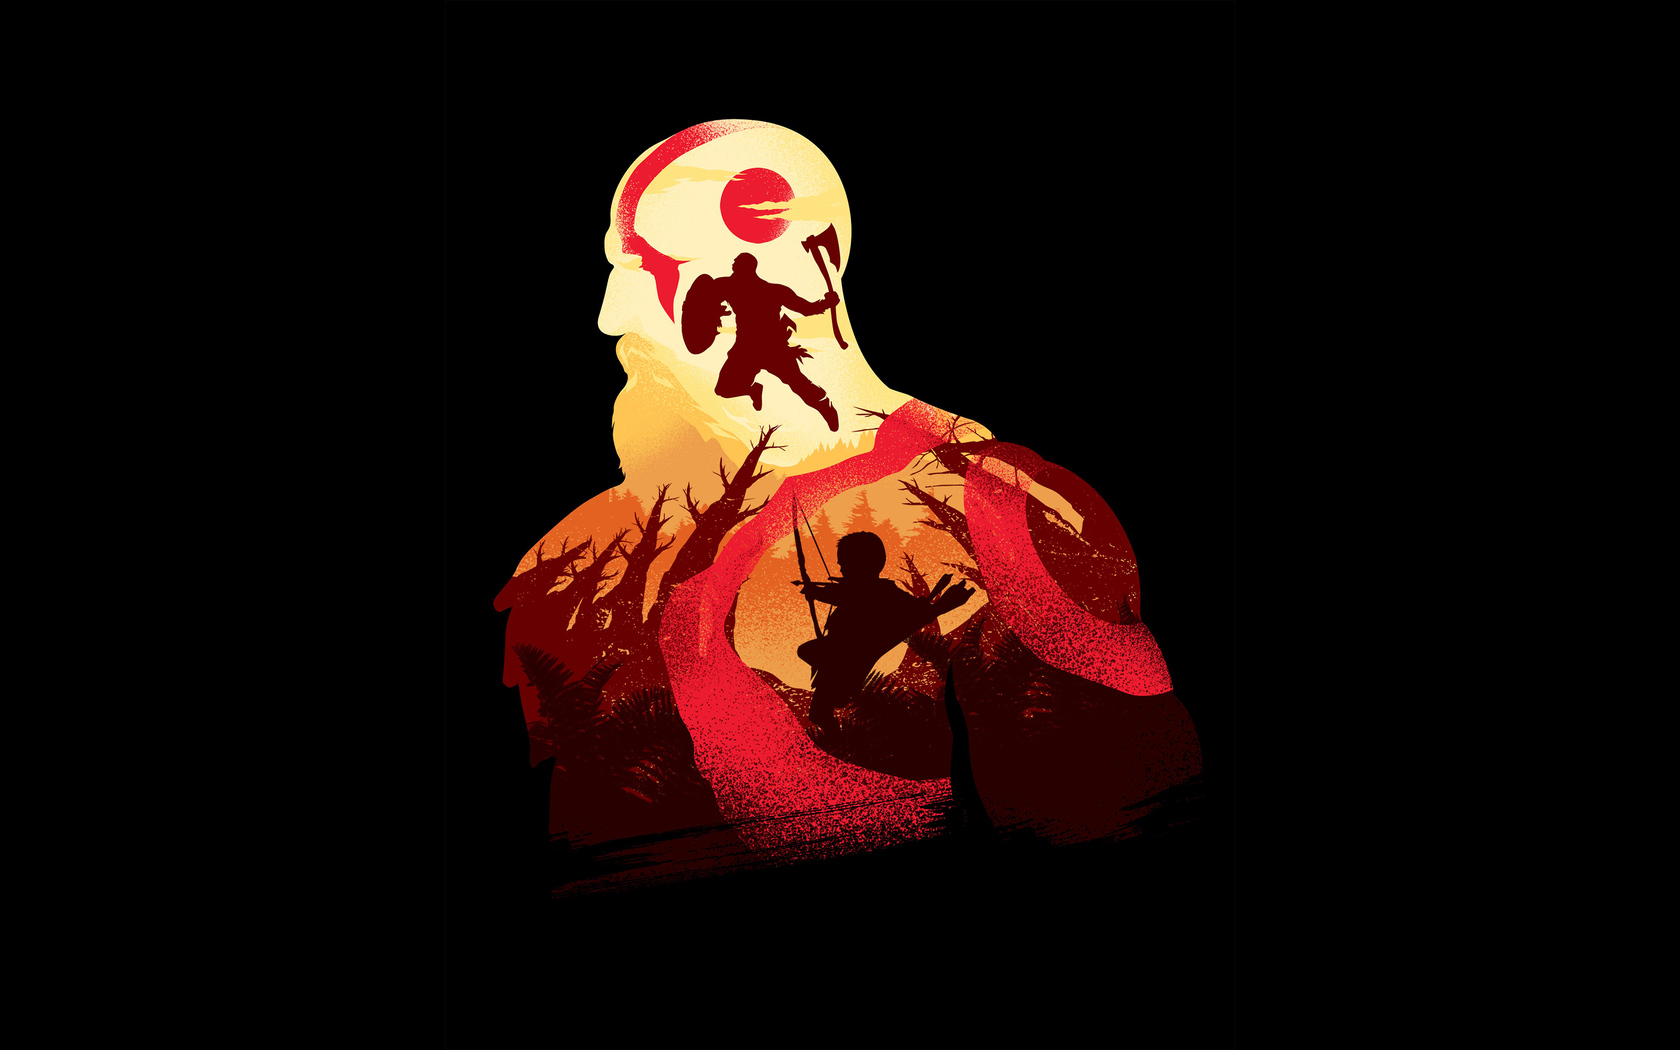 kratos-in-god-of-war-4k-minimalism-zk.jpg